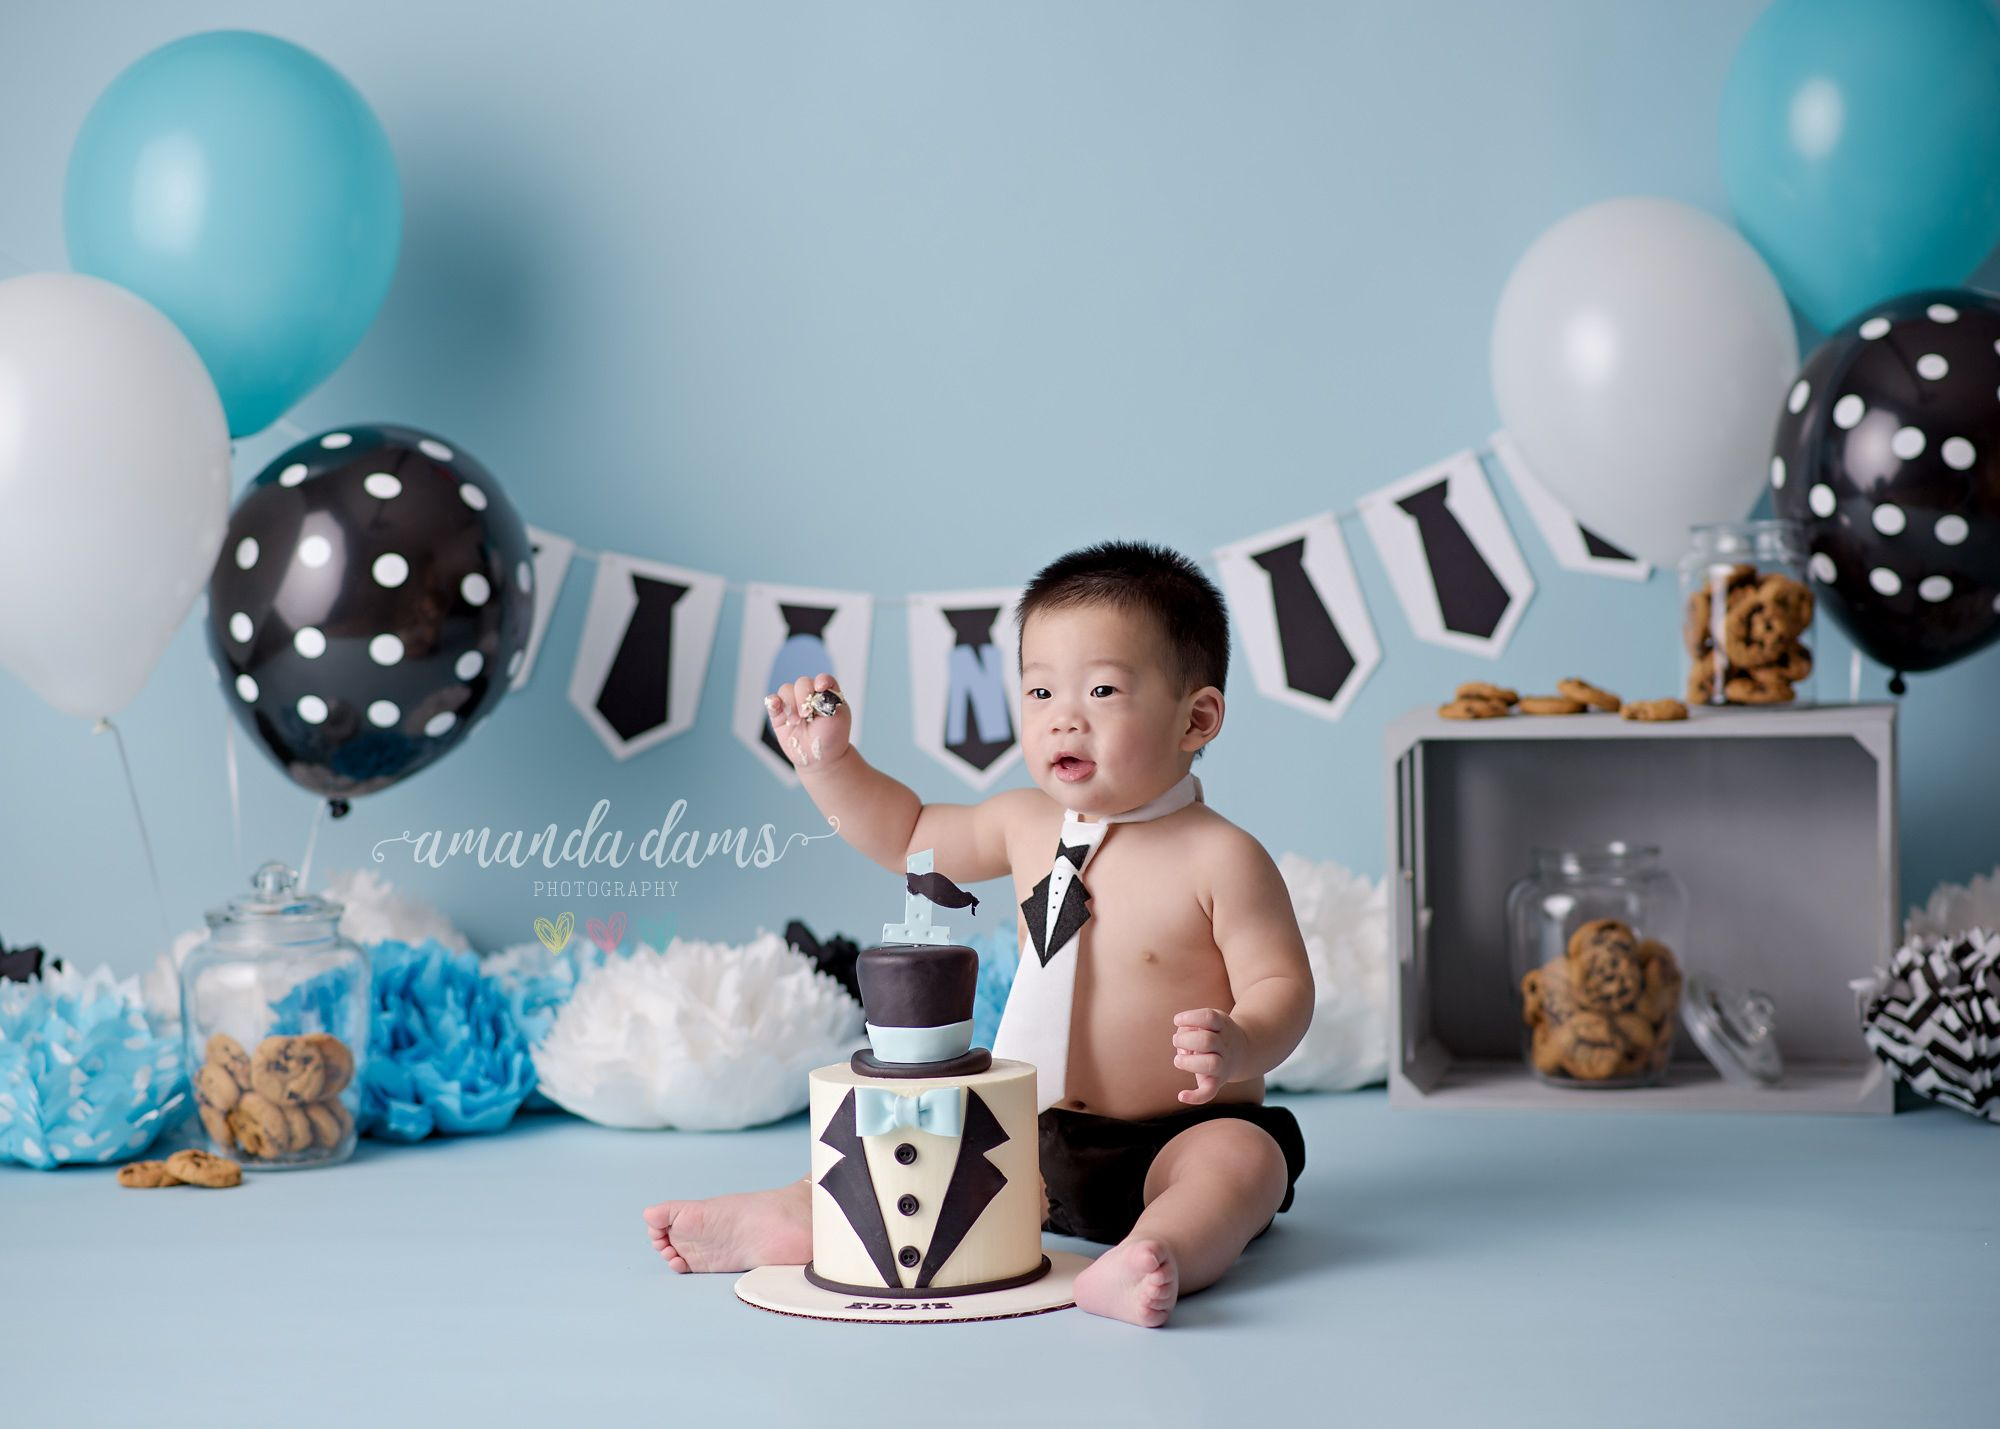 Baby boss birthday ideas Blue white and black cake smash